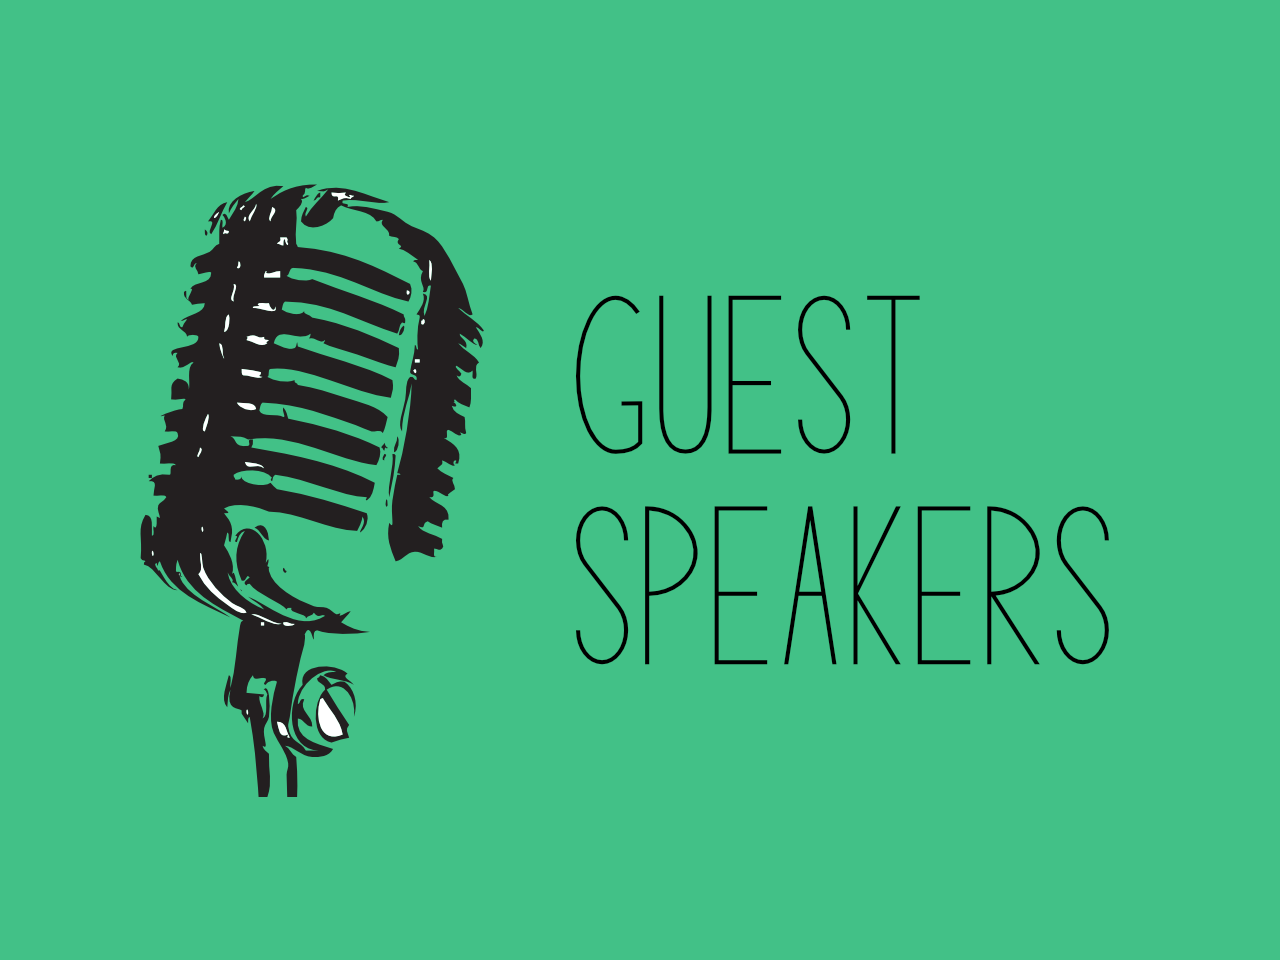 GUEST SPEAKERS GRAPHIC GREEN.png